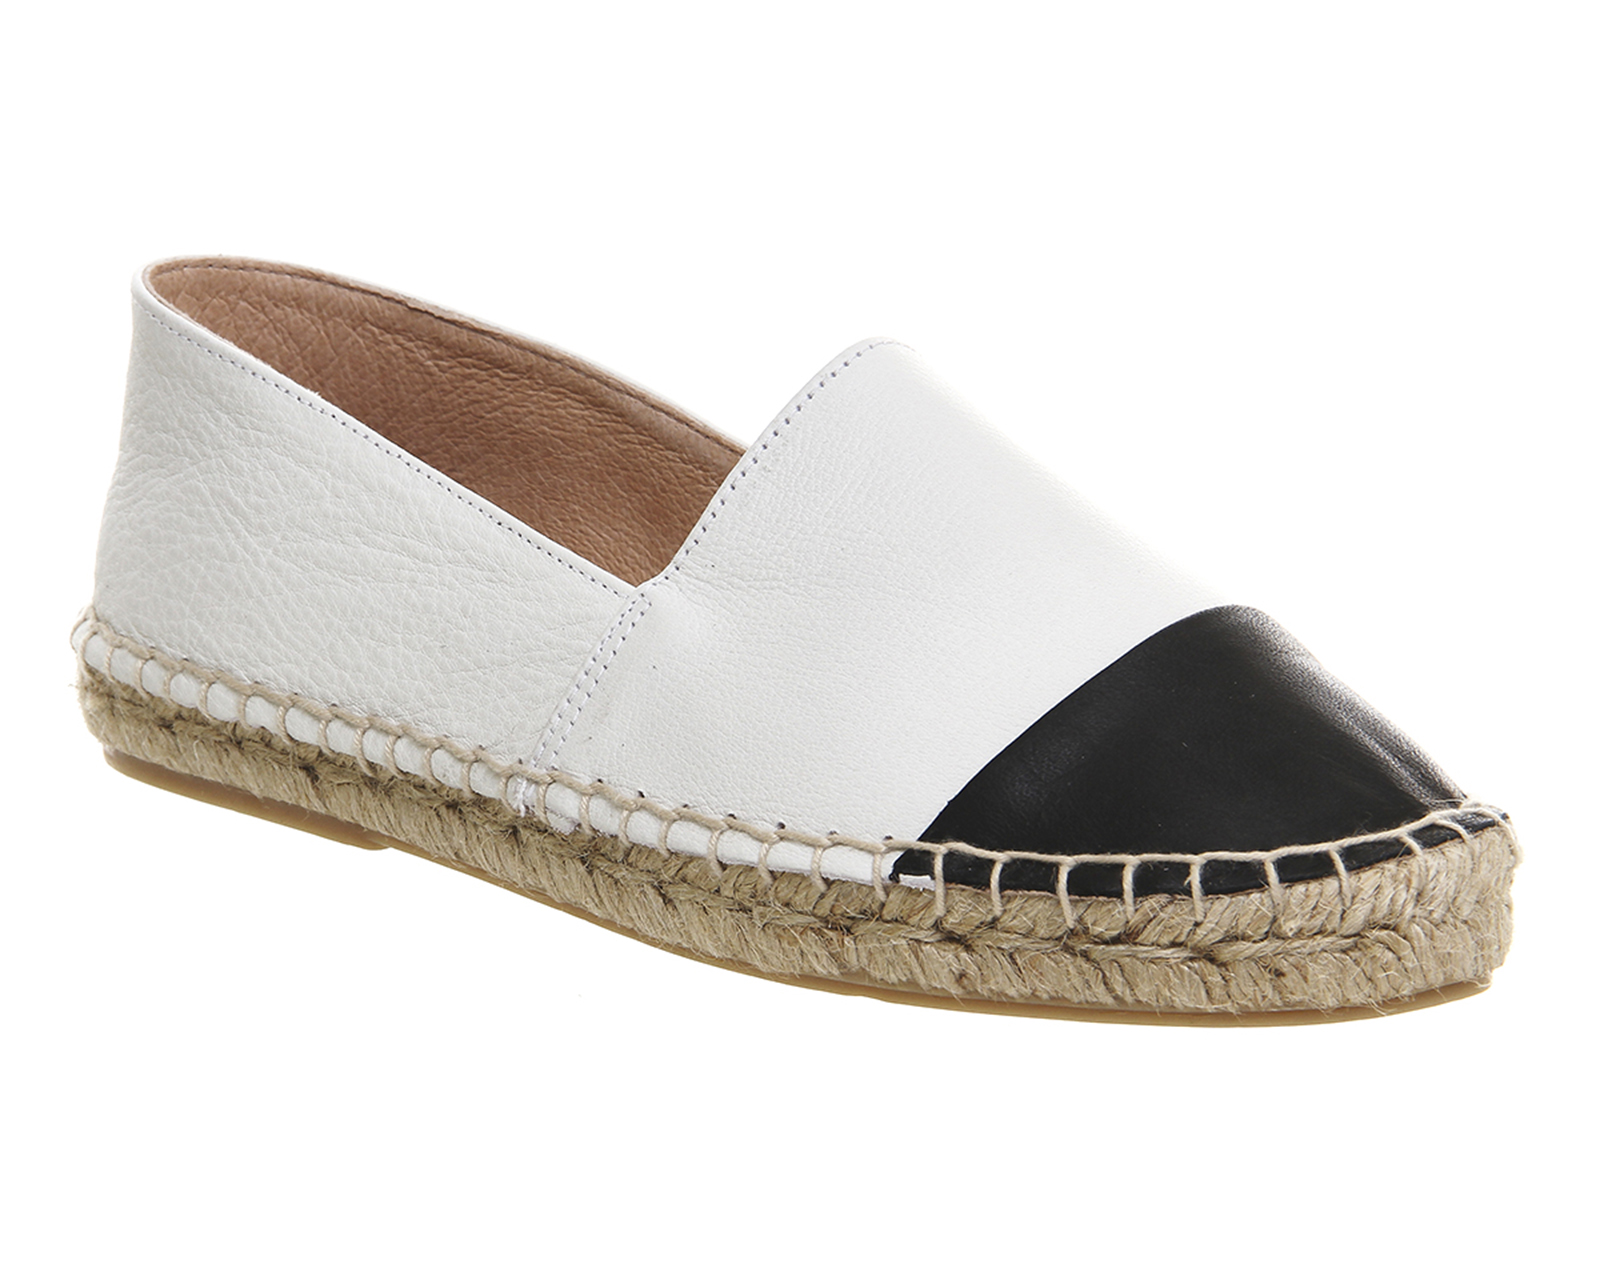 Chanel Slip On Shoes Espadrilles Price